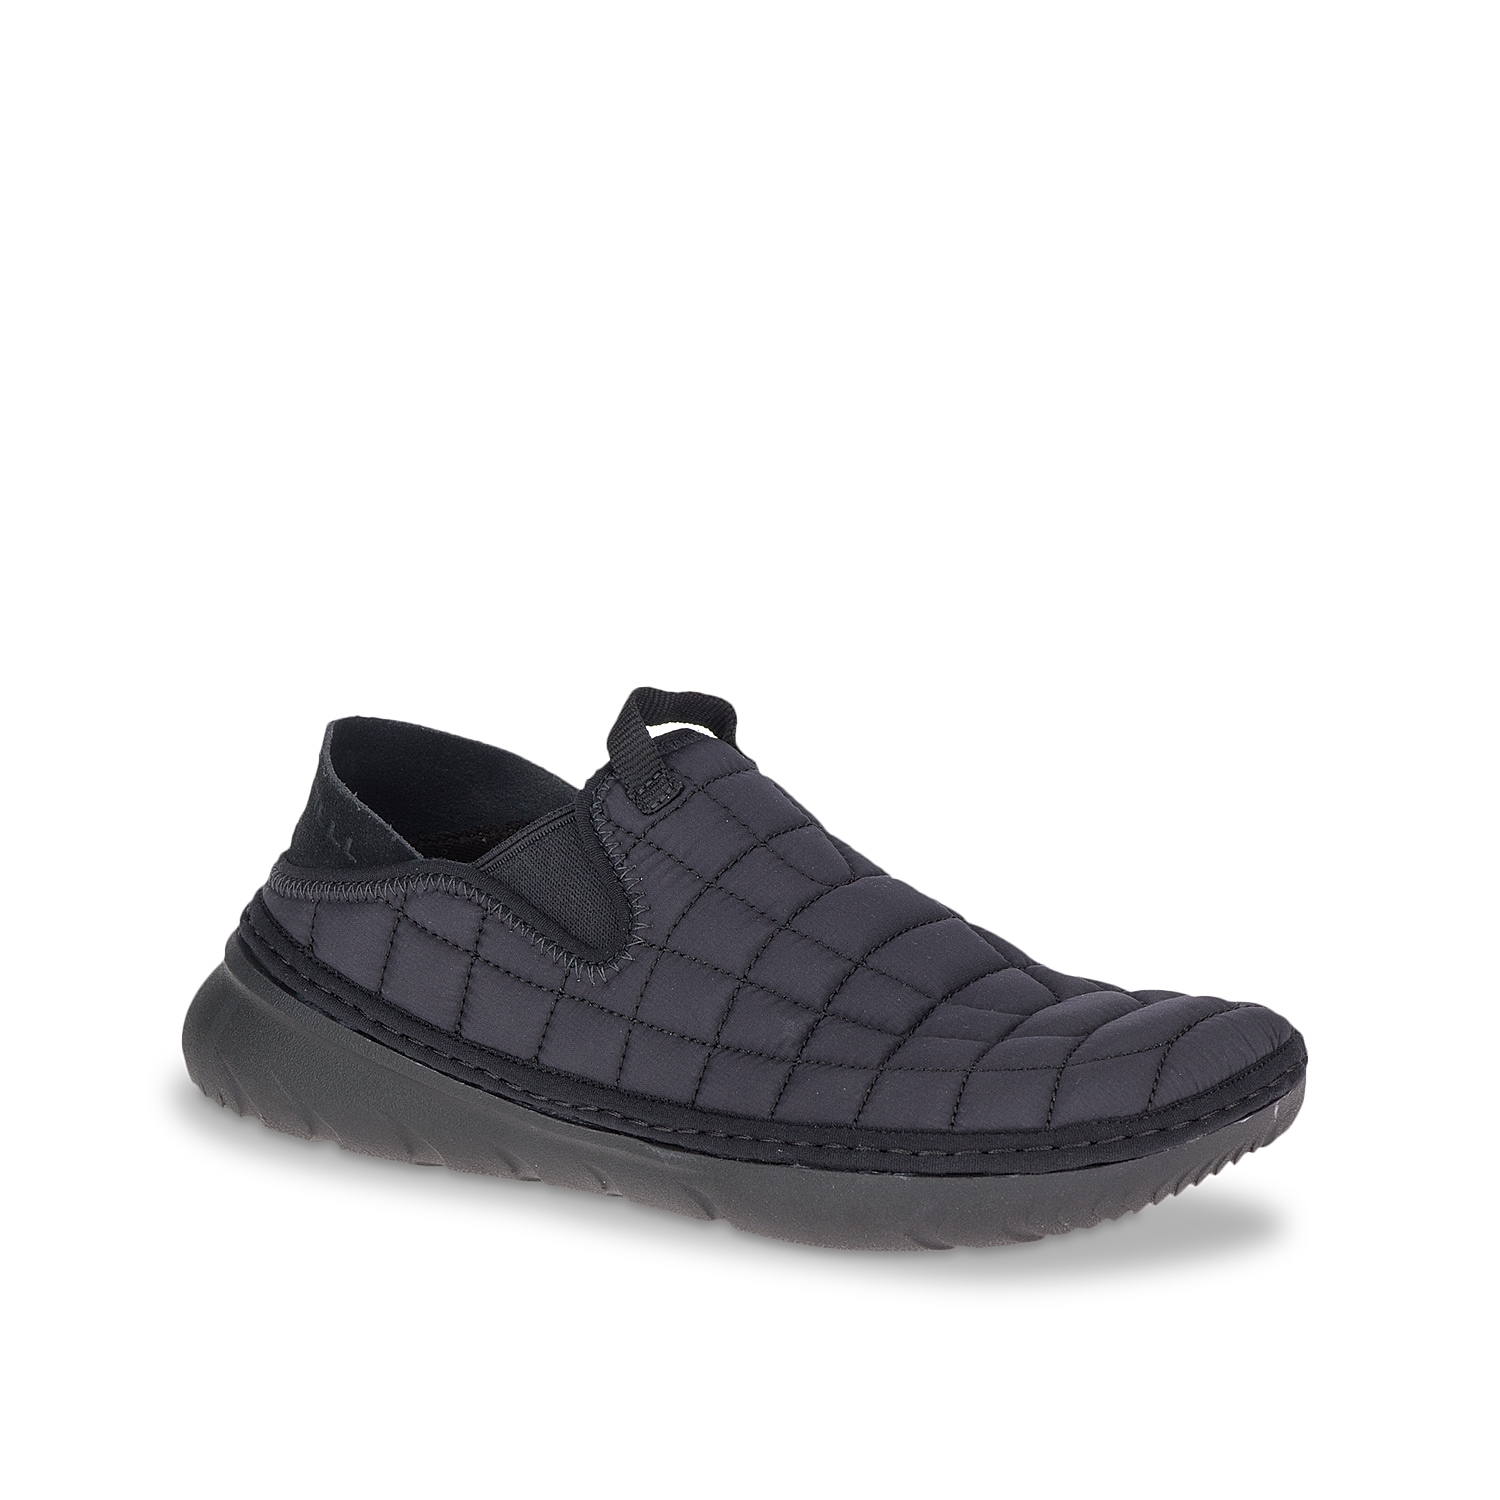 Get hooked to the lightweight comfort and optimal style of the Merrell Hut Moc slip-on. The quilted nylon construction is backed by a comfortable EVA footbed and ultra-light EVA sole.